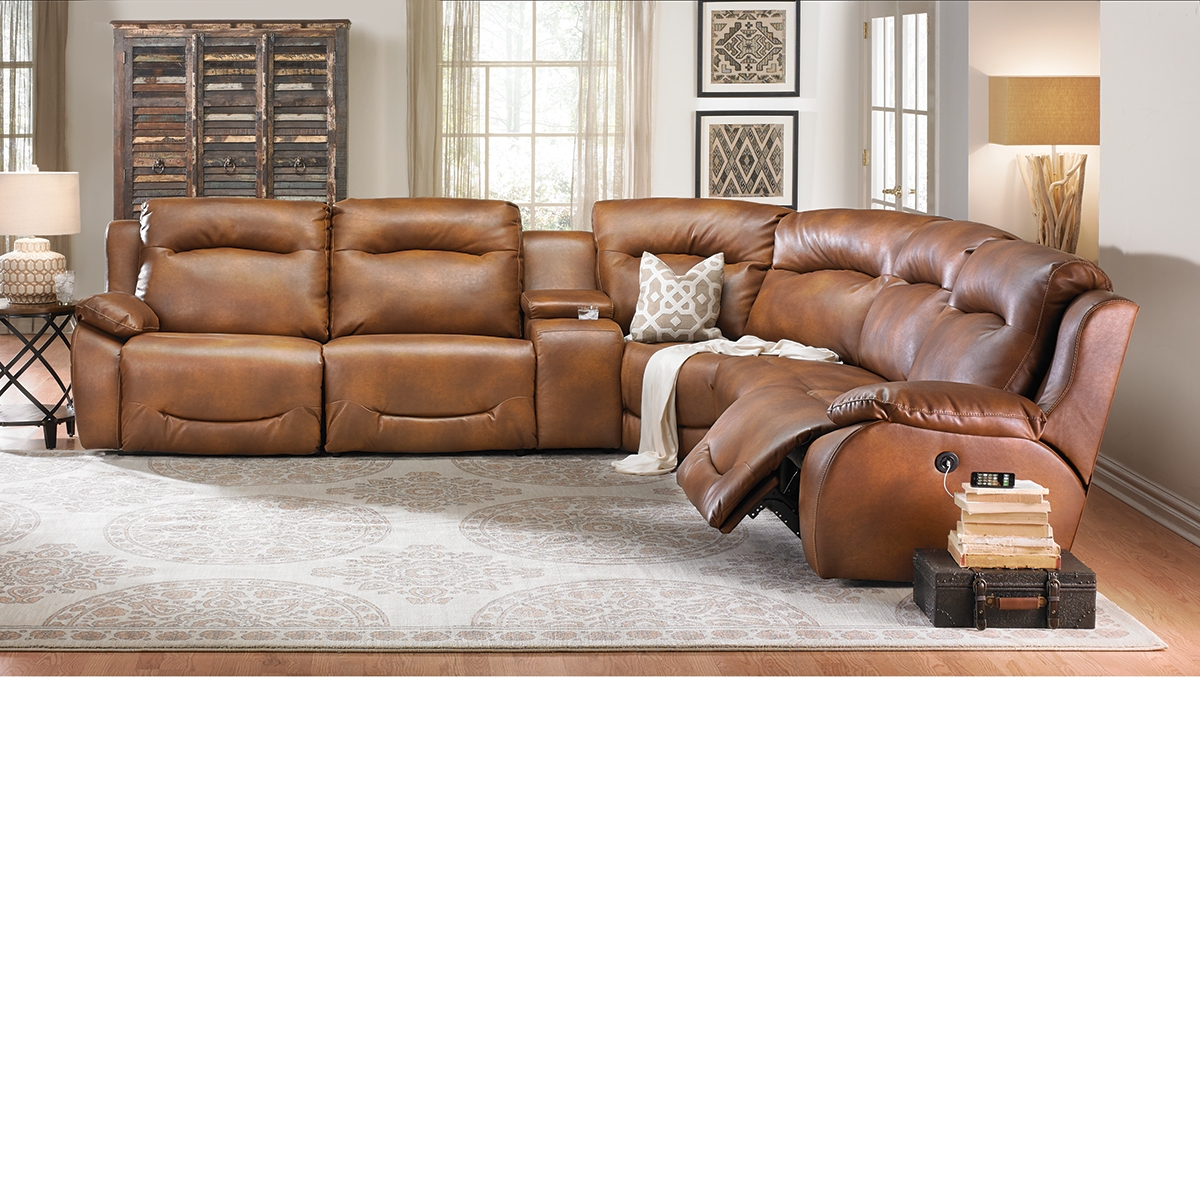 The Dump Furniture Outlet Closeout 6 Piece Power Plus Sectional Regarding Closeout Sectional Sofas (View 15 of 15)